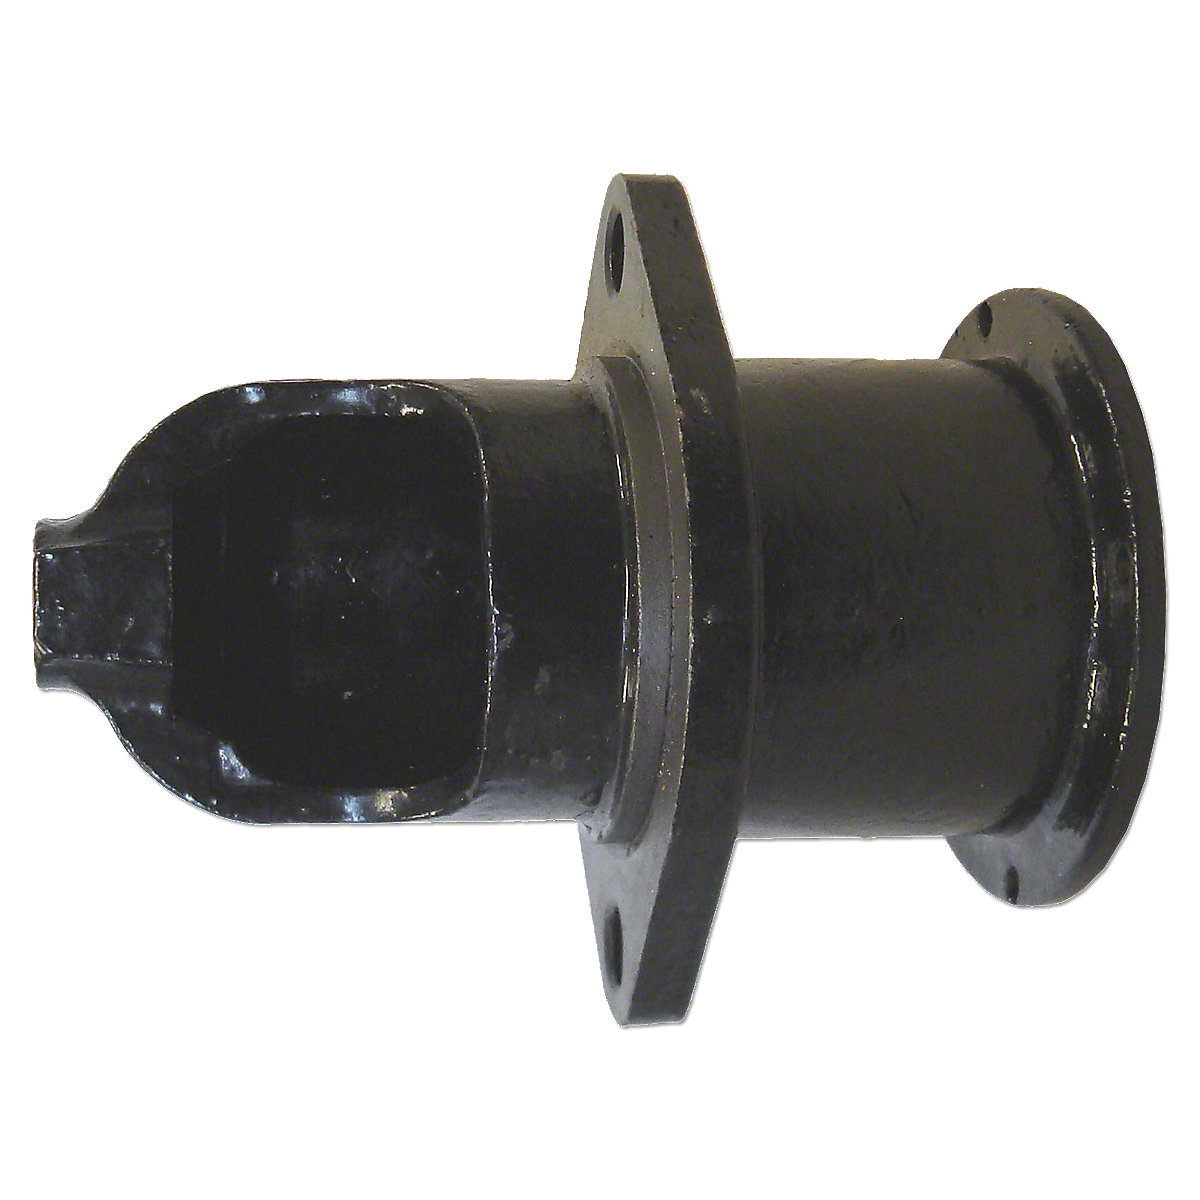 Starter Nosecone For Massey Ferguson: TO20, TO30, TO35.